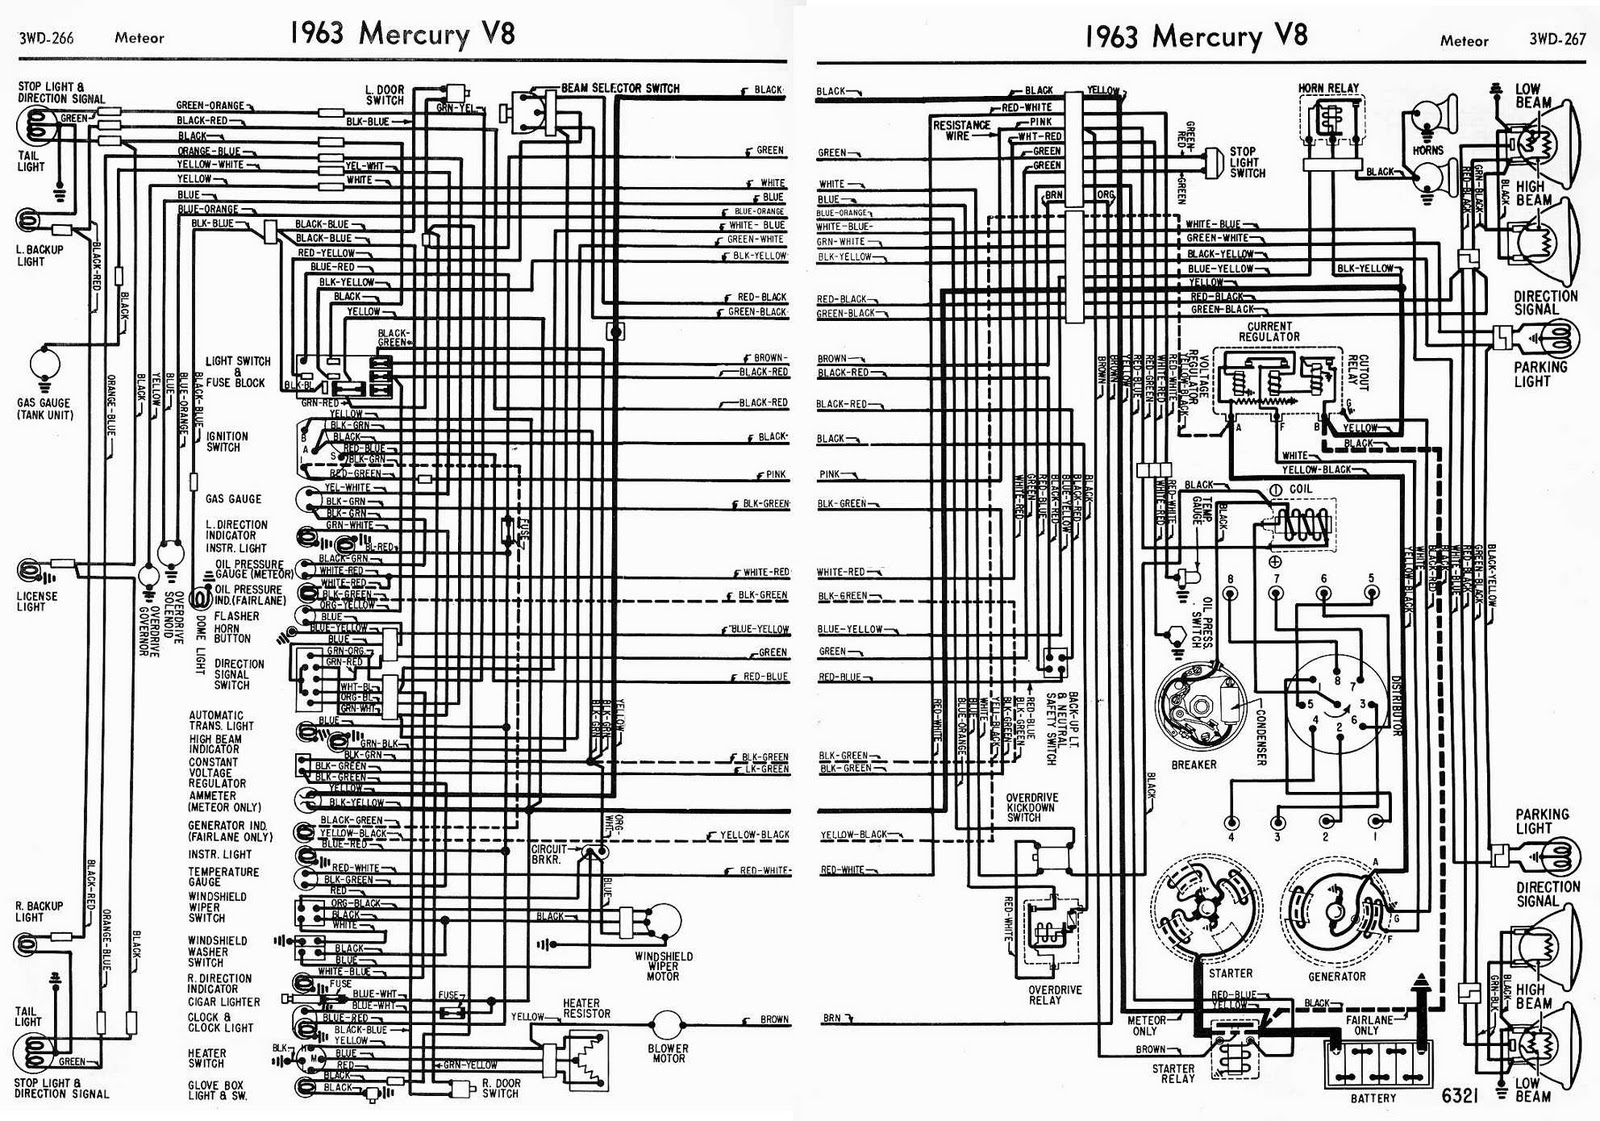 1998 Polaris Wiring Diagram Trail Boss Online Schematics 250 1988 John Deere Gator Xuv